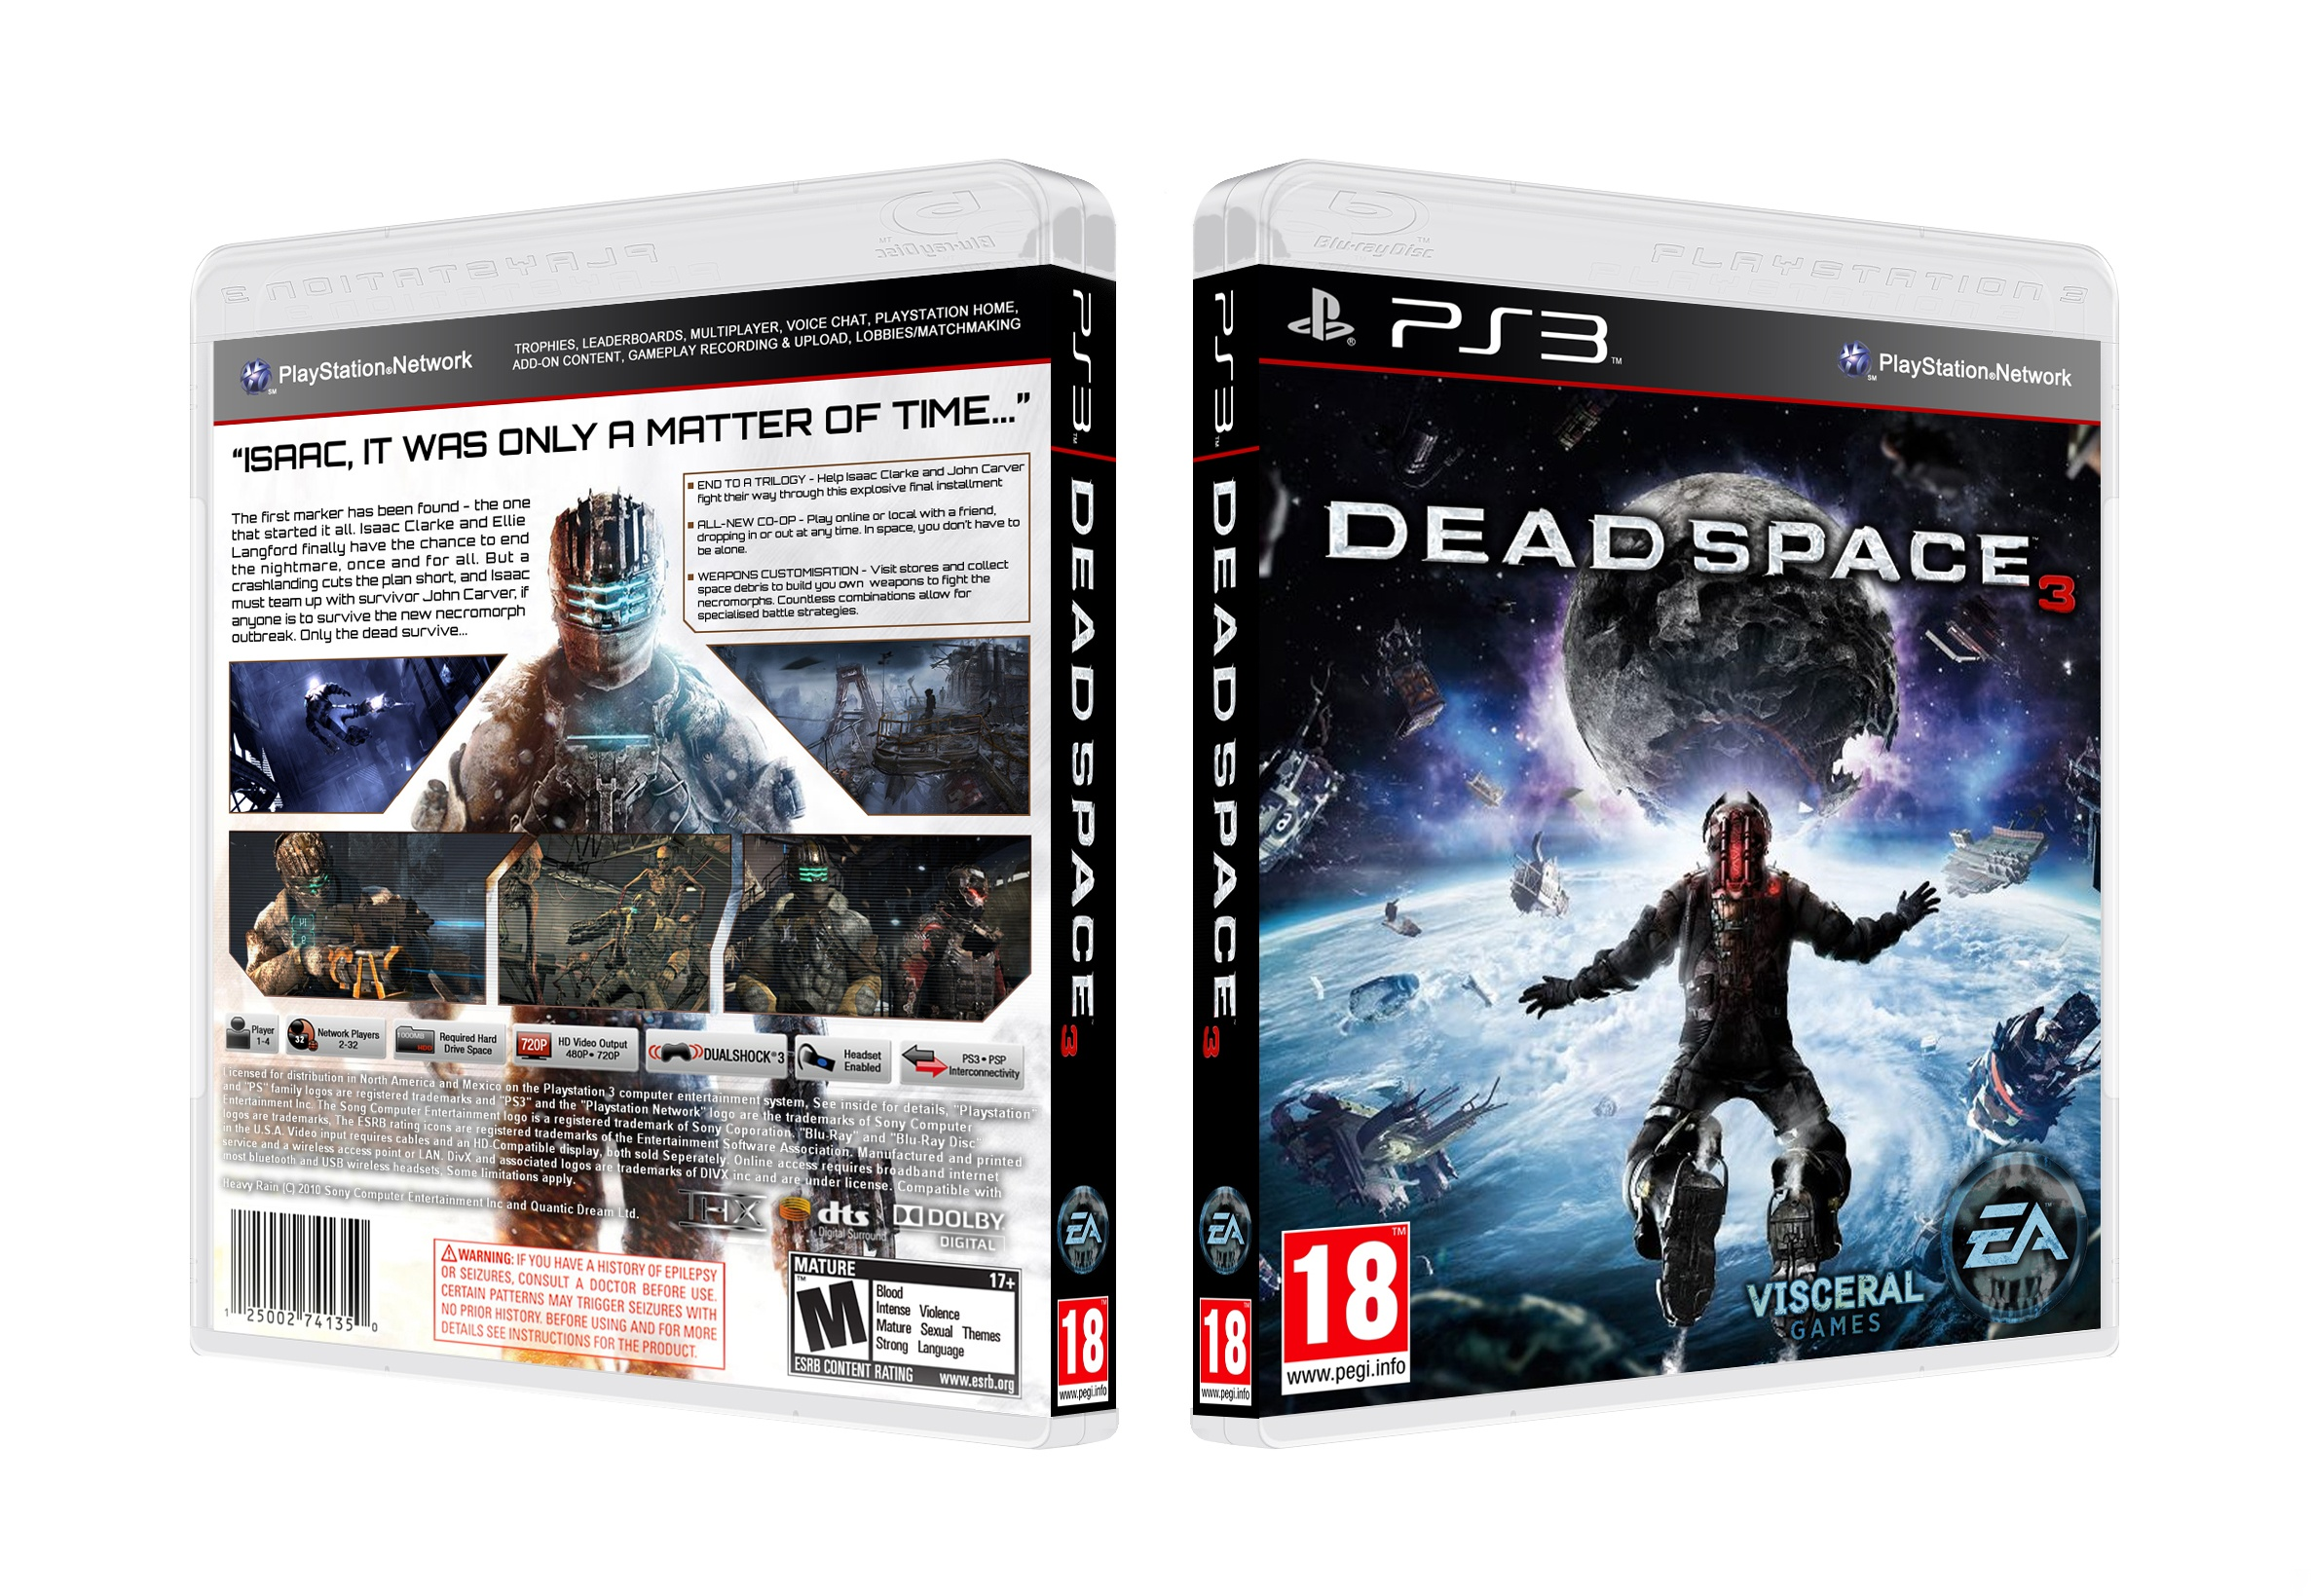 Viewing Full Size Dead Space 3 Box Cover